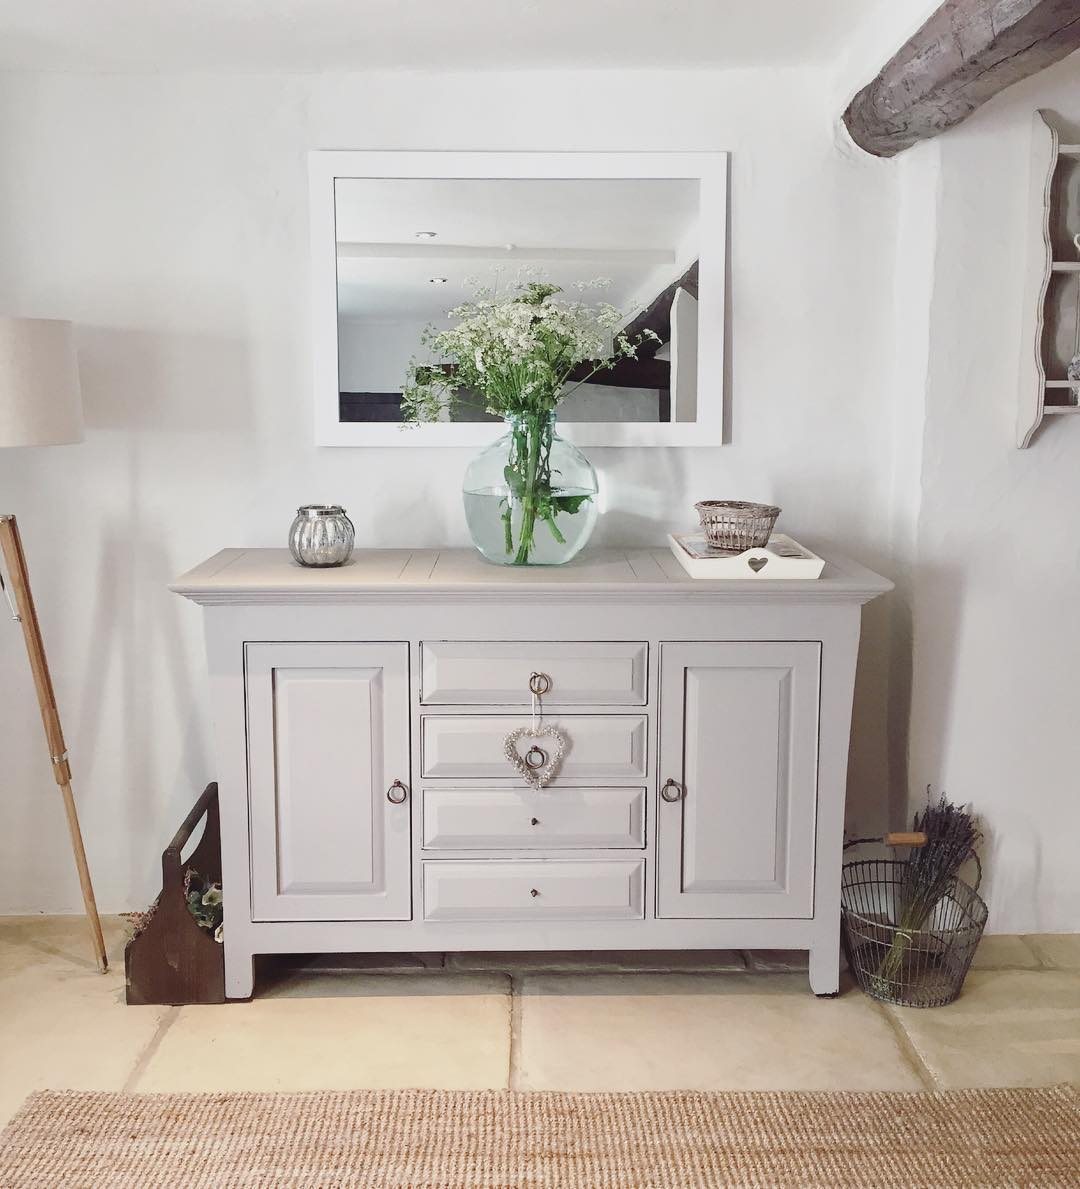 What do you think of this gorgeous grey dresser in a country cottage in the UK? See the full home tour on www.lovetohome.co.uk